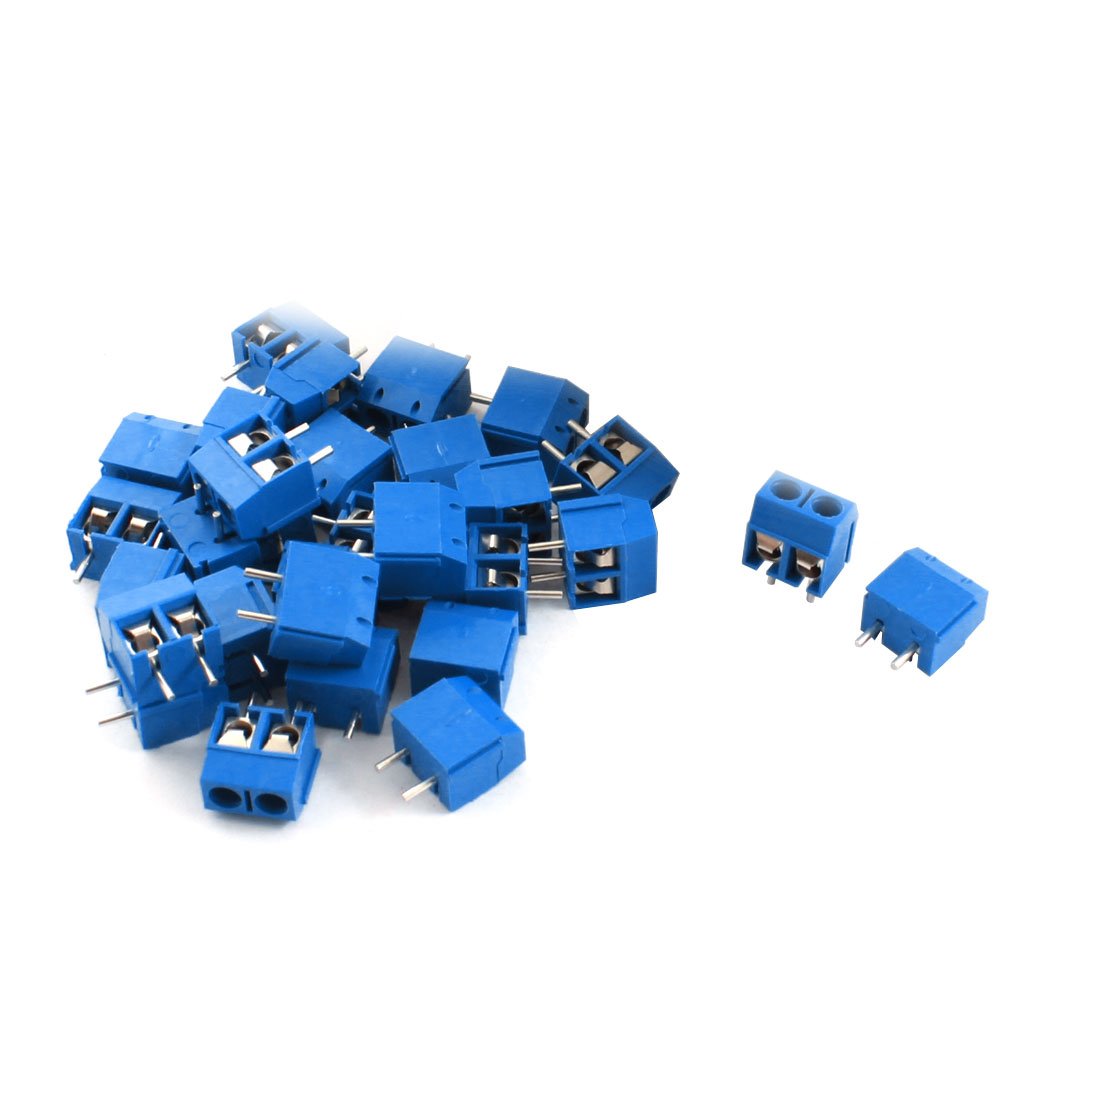 23Pcs 5.08mm Pitch 2Pin PCB Mount Power Screw Terminal Block Connector